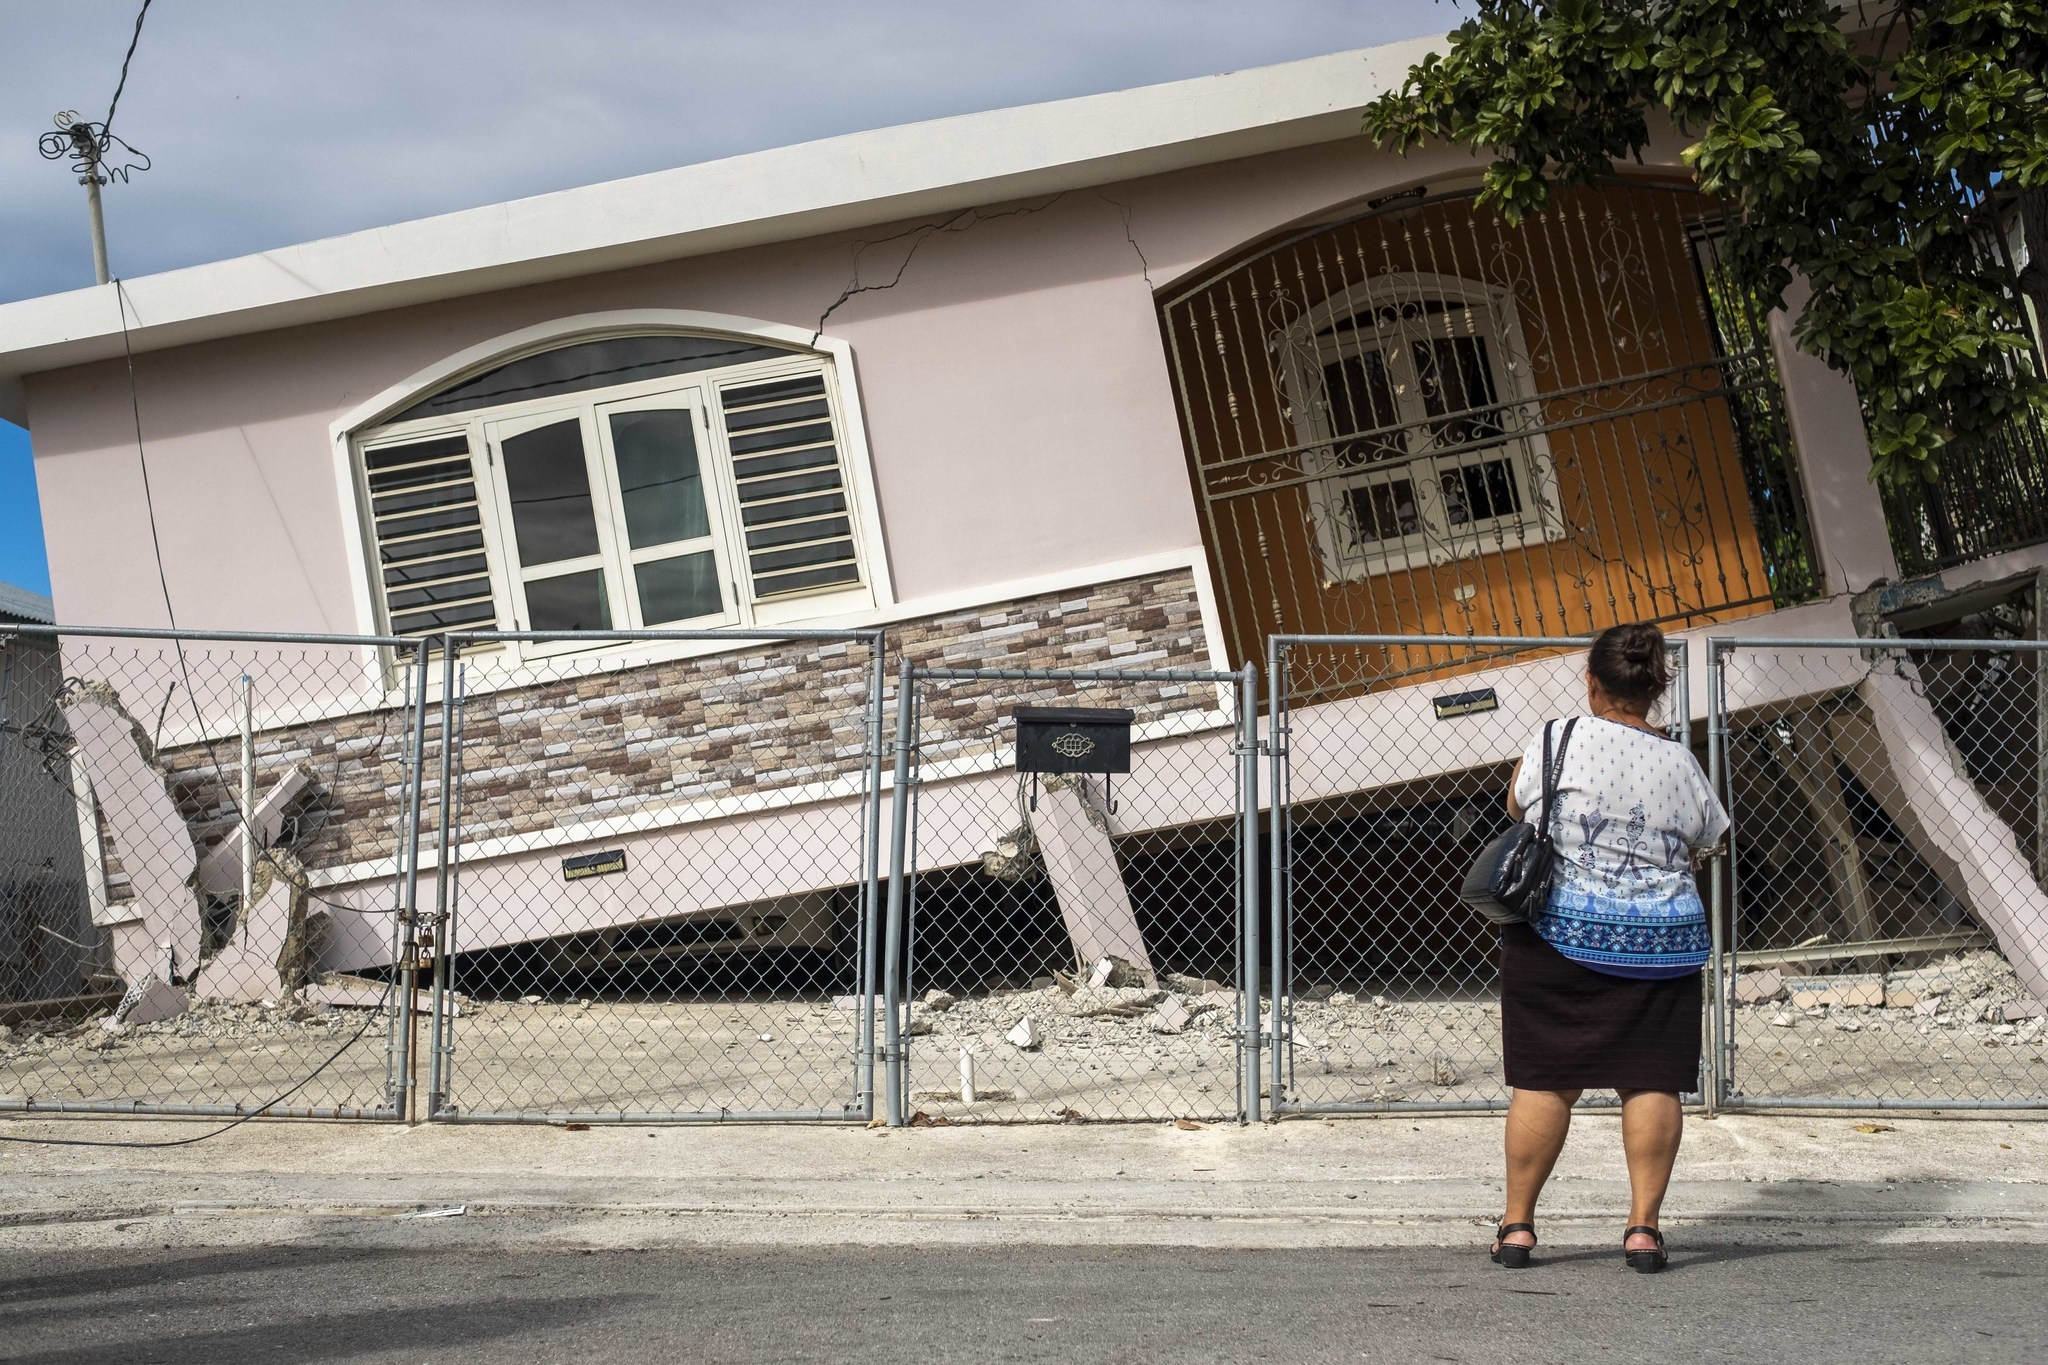 Puerto Rico struck with with 6.0-magnitude earthquake